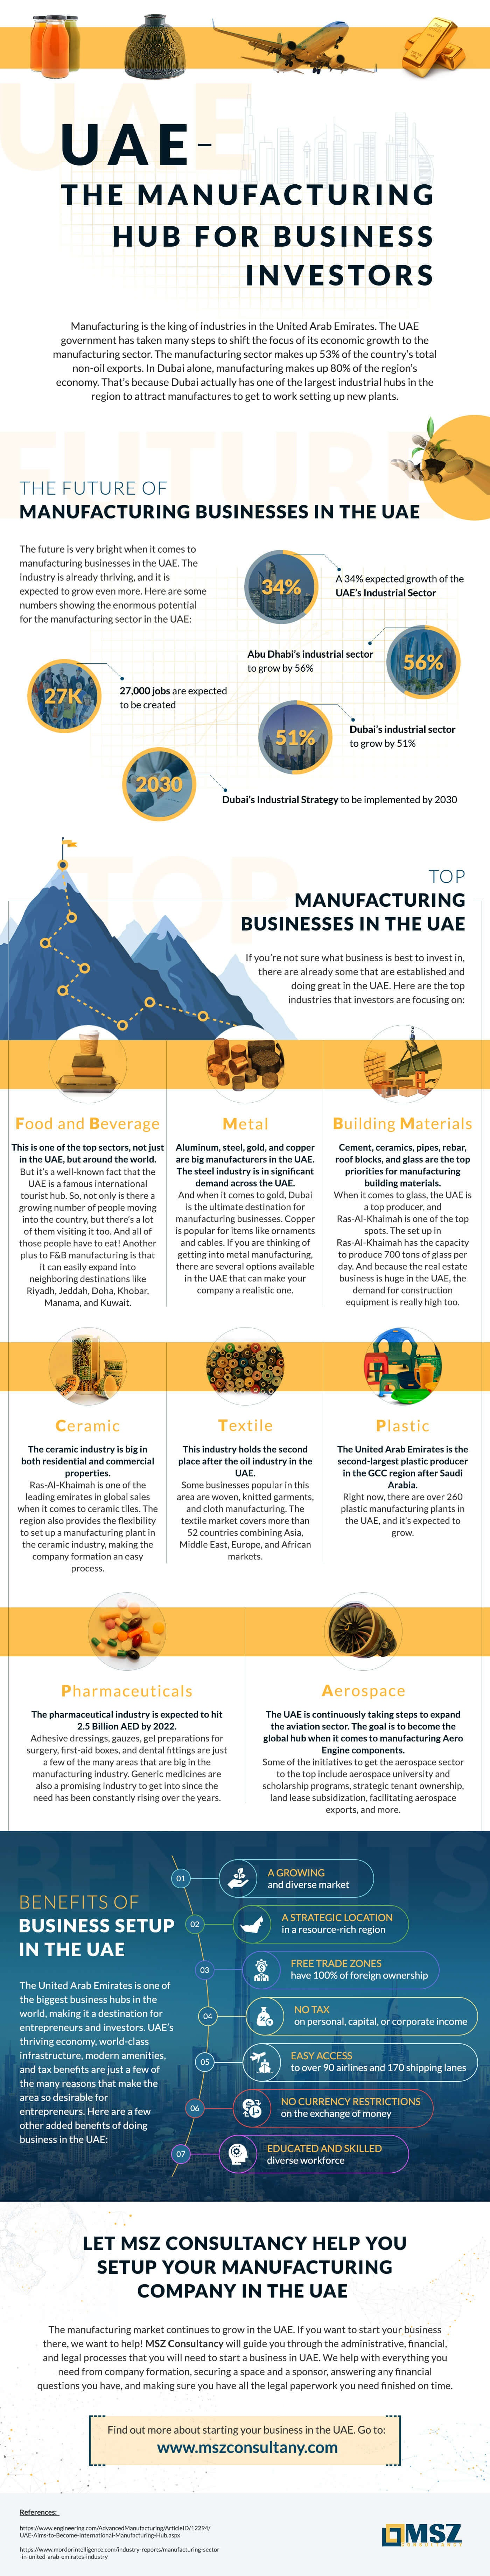 Uae: the Manufacturing Hub for Business Investors #infographic #Business